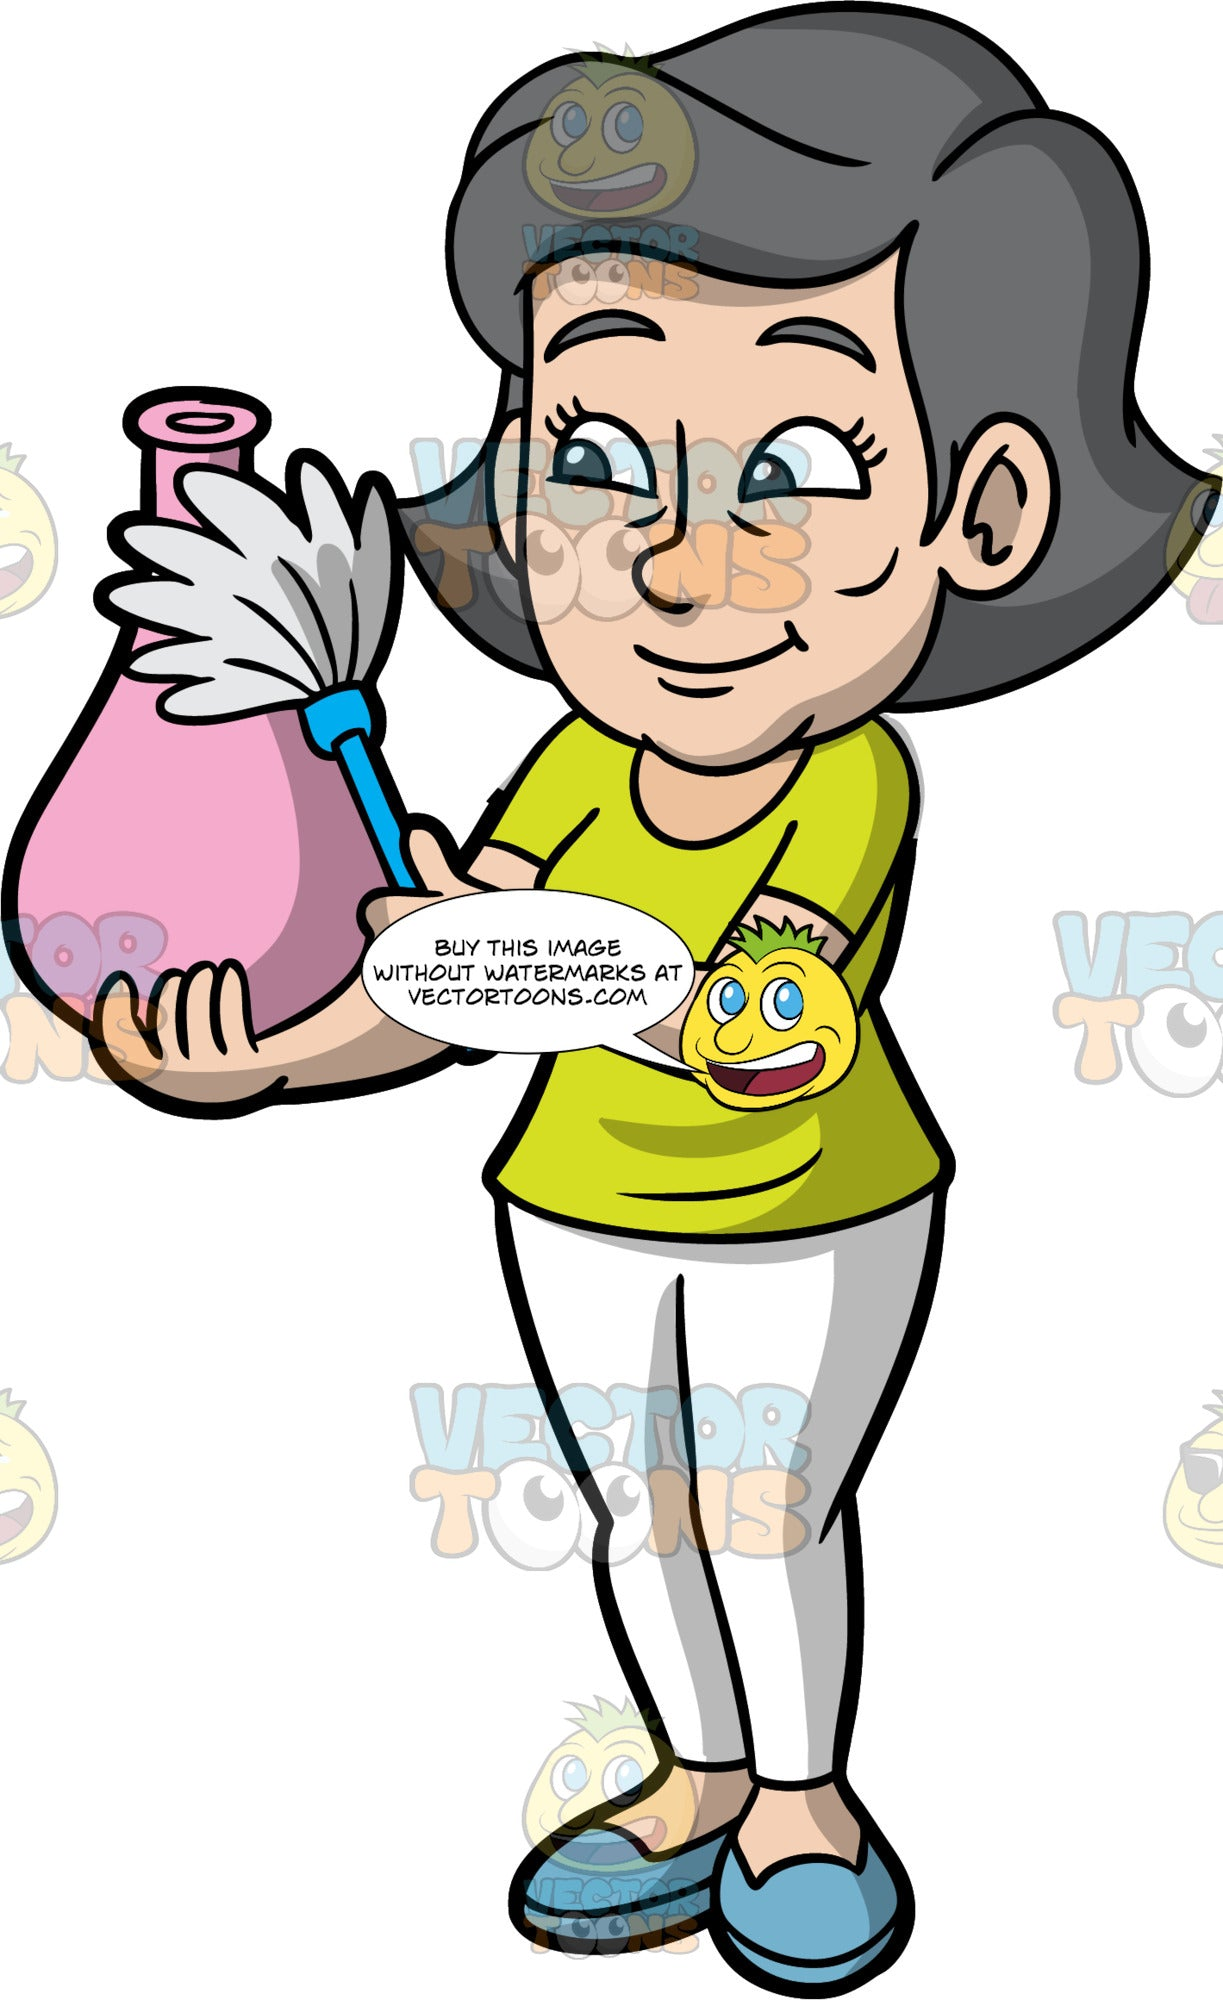 Mary Dusting A Pink Vase. An older woman with gray hair, wearing white pants, a lime green shirt, and blue shoes, using a feather duster to dust the pink vase in her hand